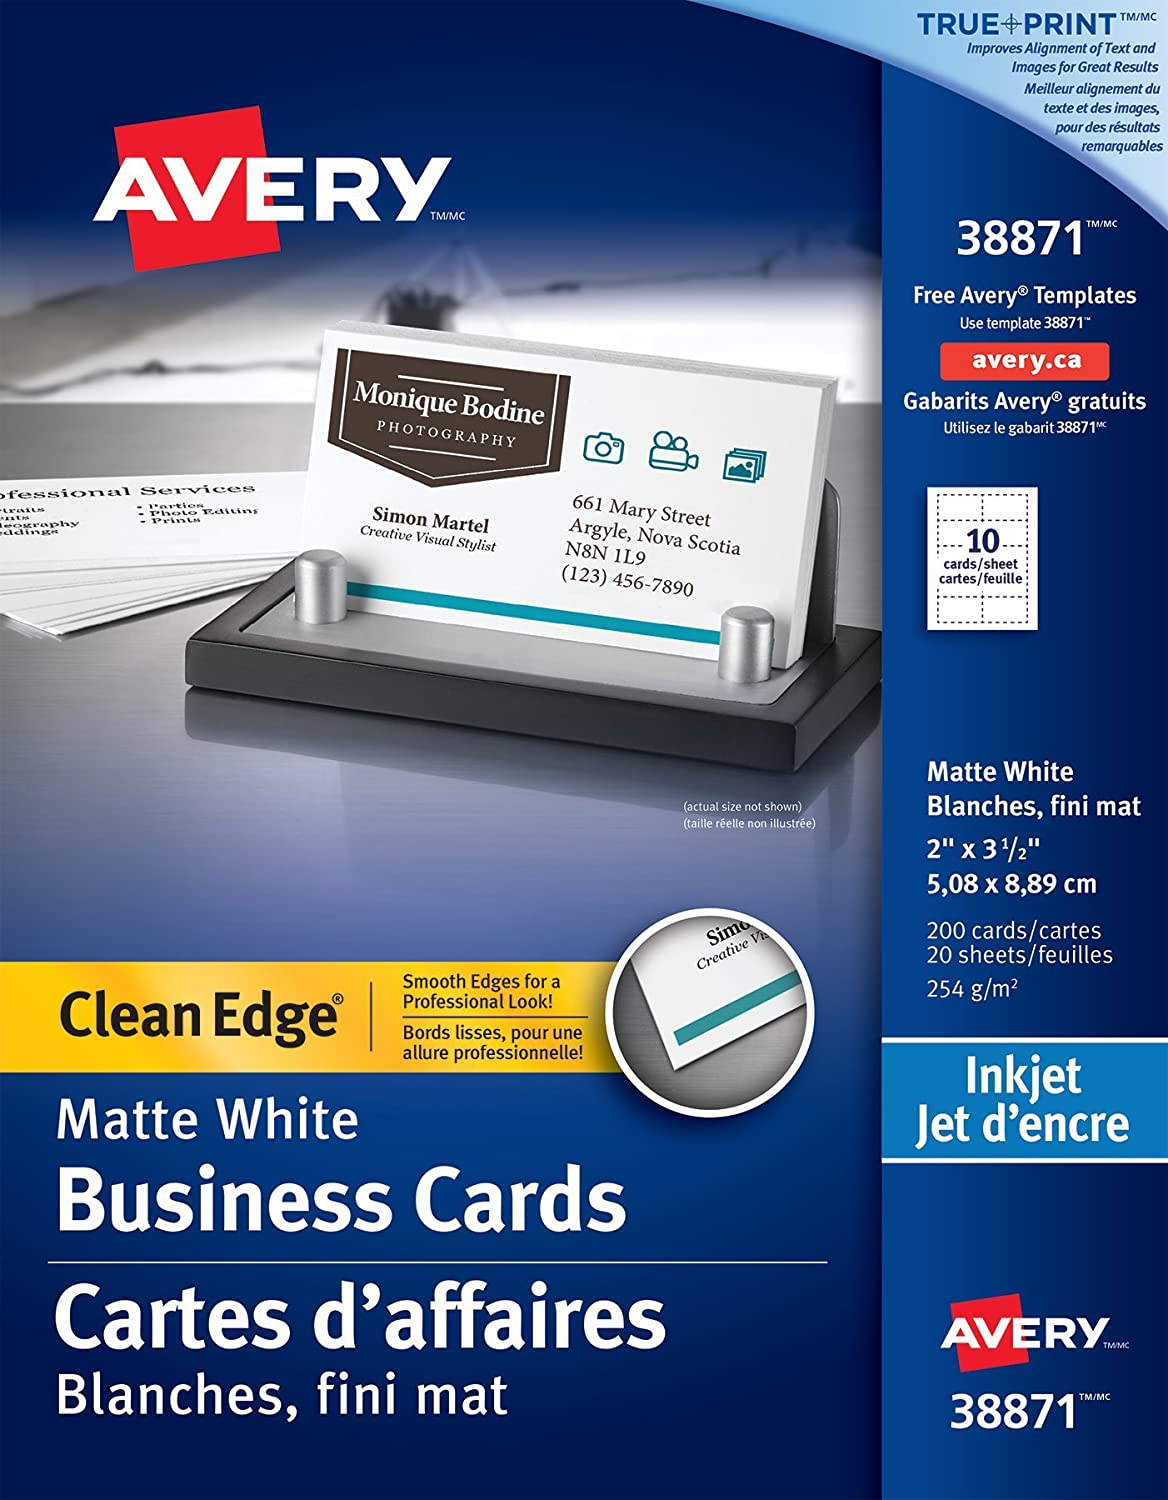 Avery Clean Edge Business Cards for Inkjet Printers, 2 x 3-1/2, White, Matte Coated, 200 Pack, Rectangle (38871) 2 x 3-1/2 Avery Dennison CA